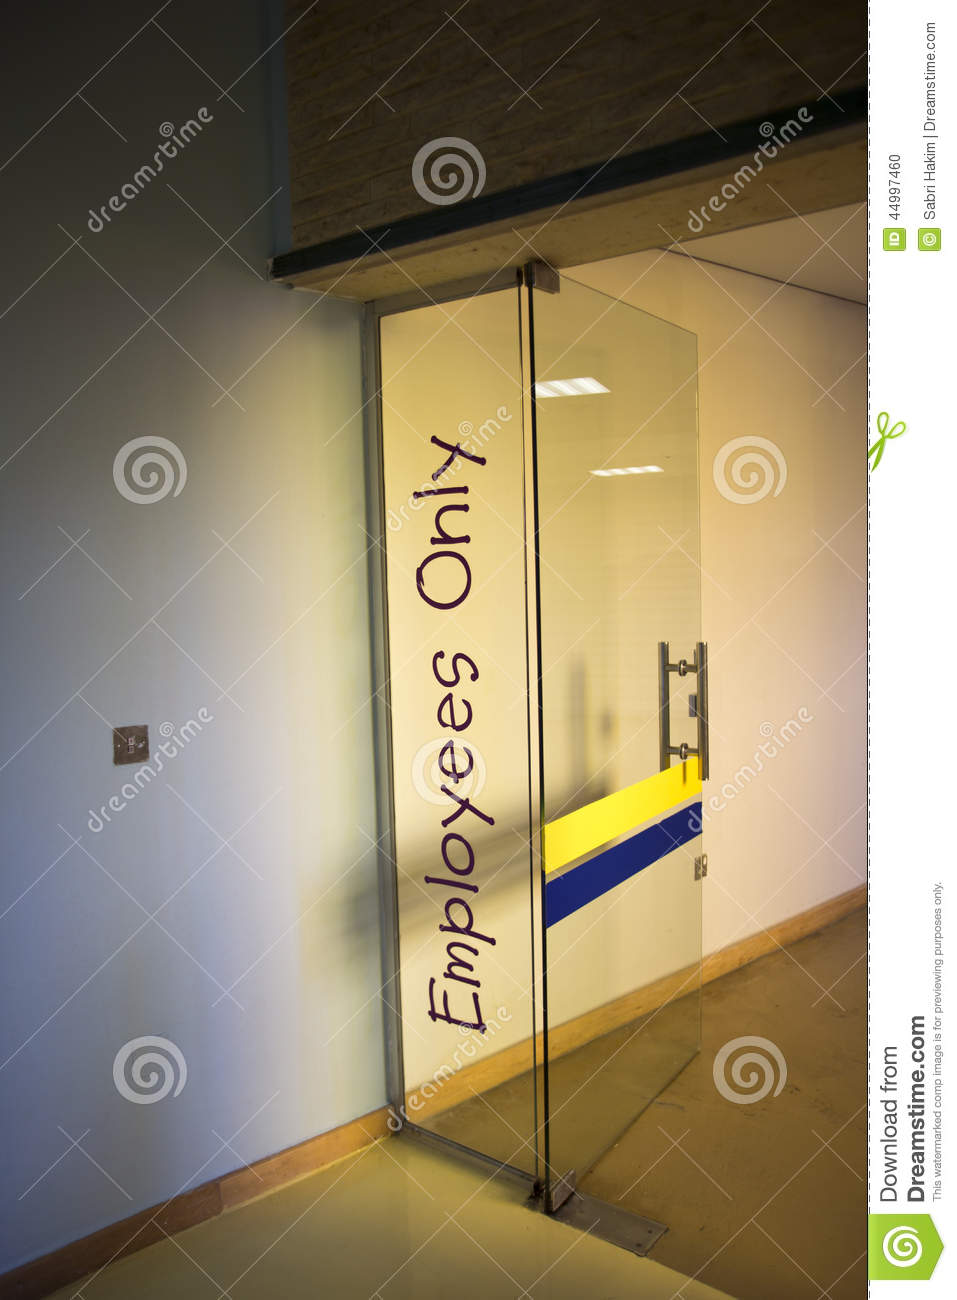 Employees Only Door Sign Stock Photo Image 44997460